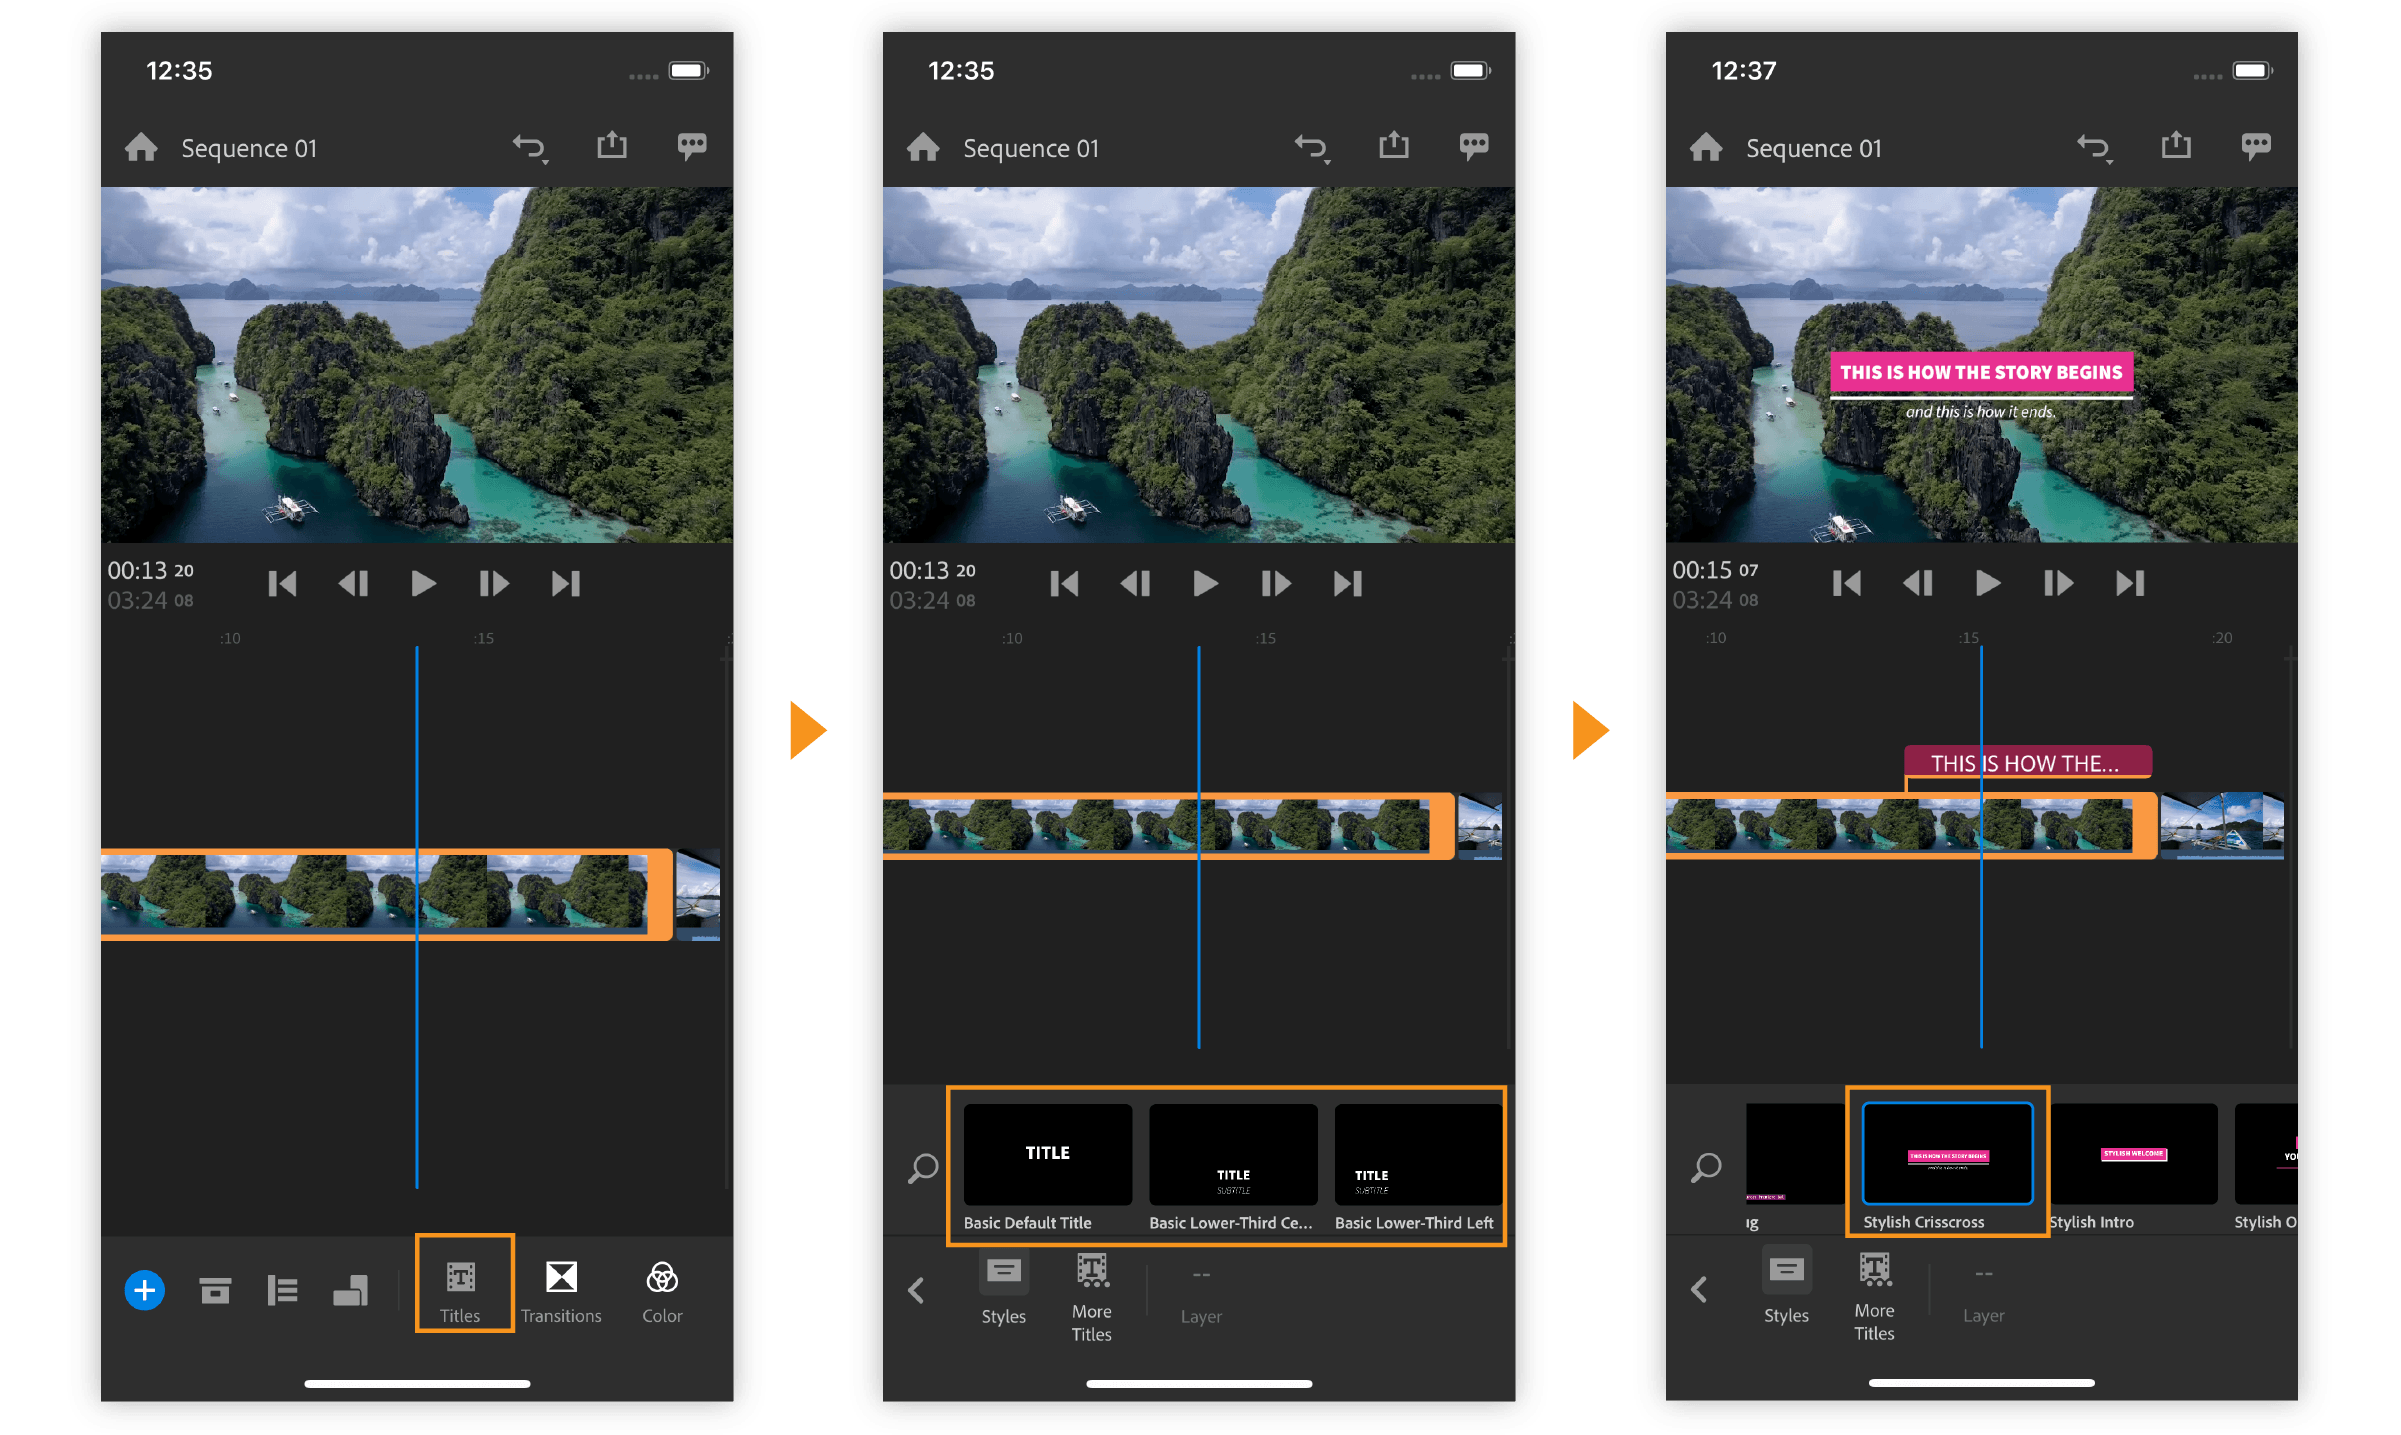 How to capture, edit, and share videos using Adobe Premiere Rush on